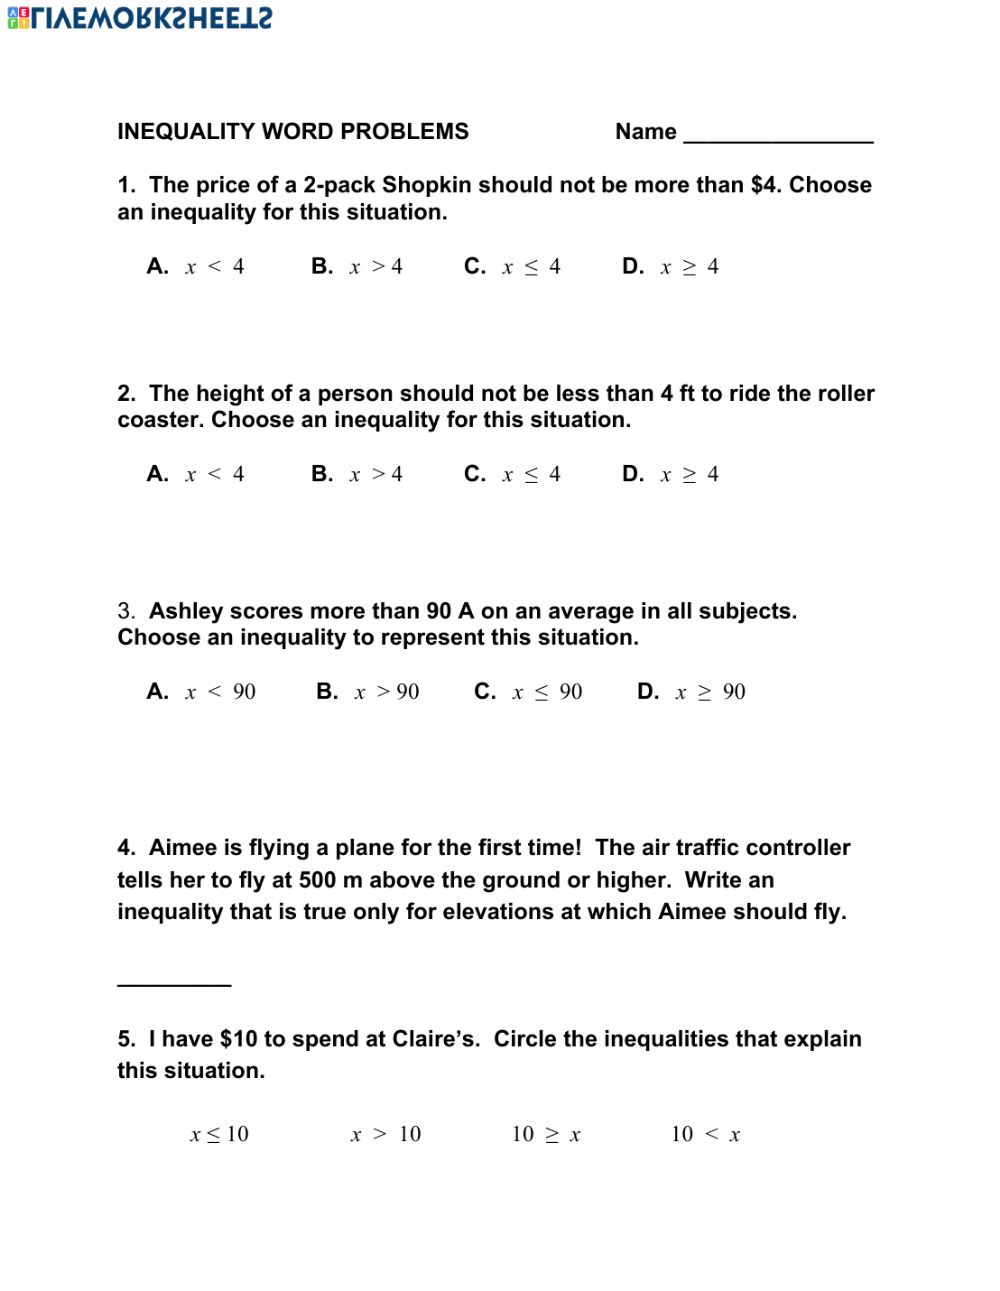 - Inequality Word Problems - Interactive Worksheet